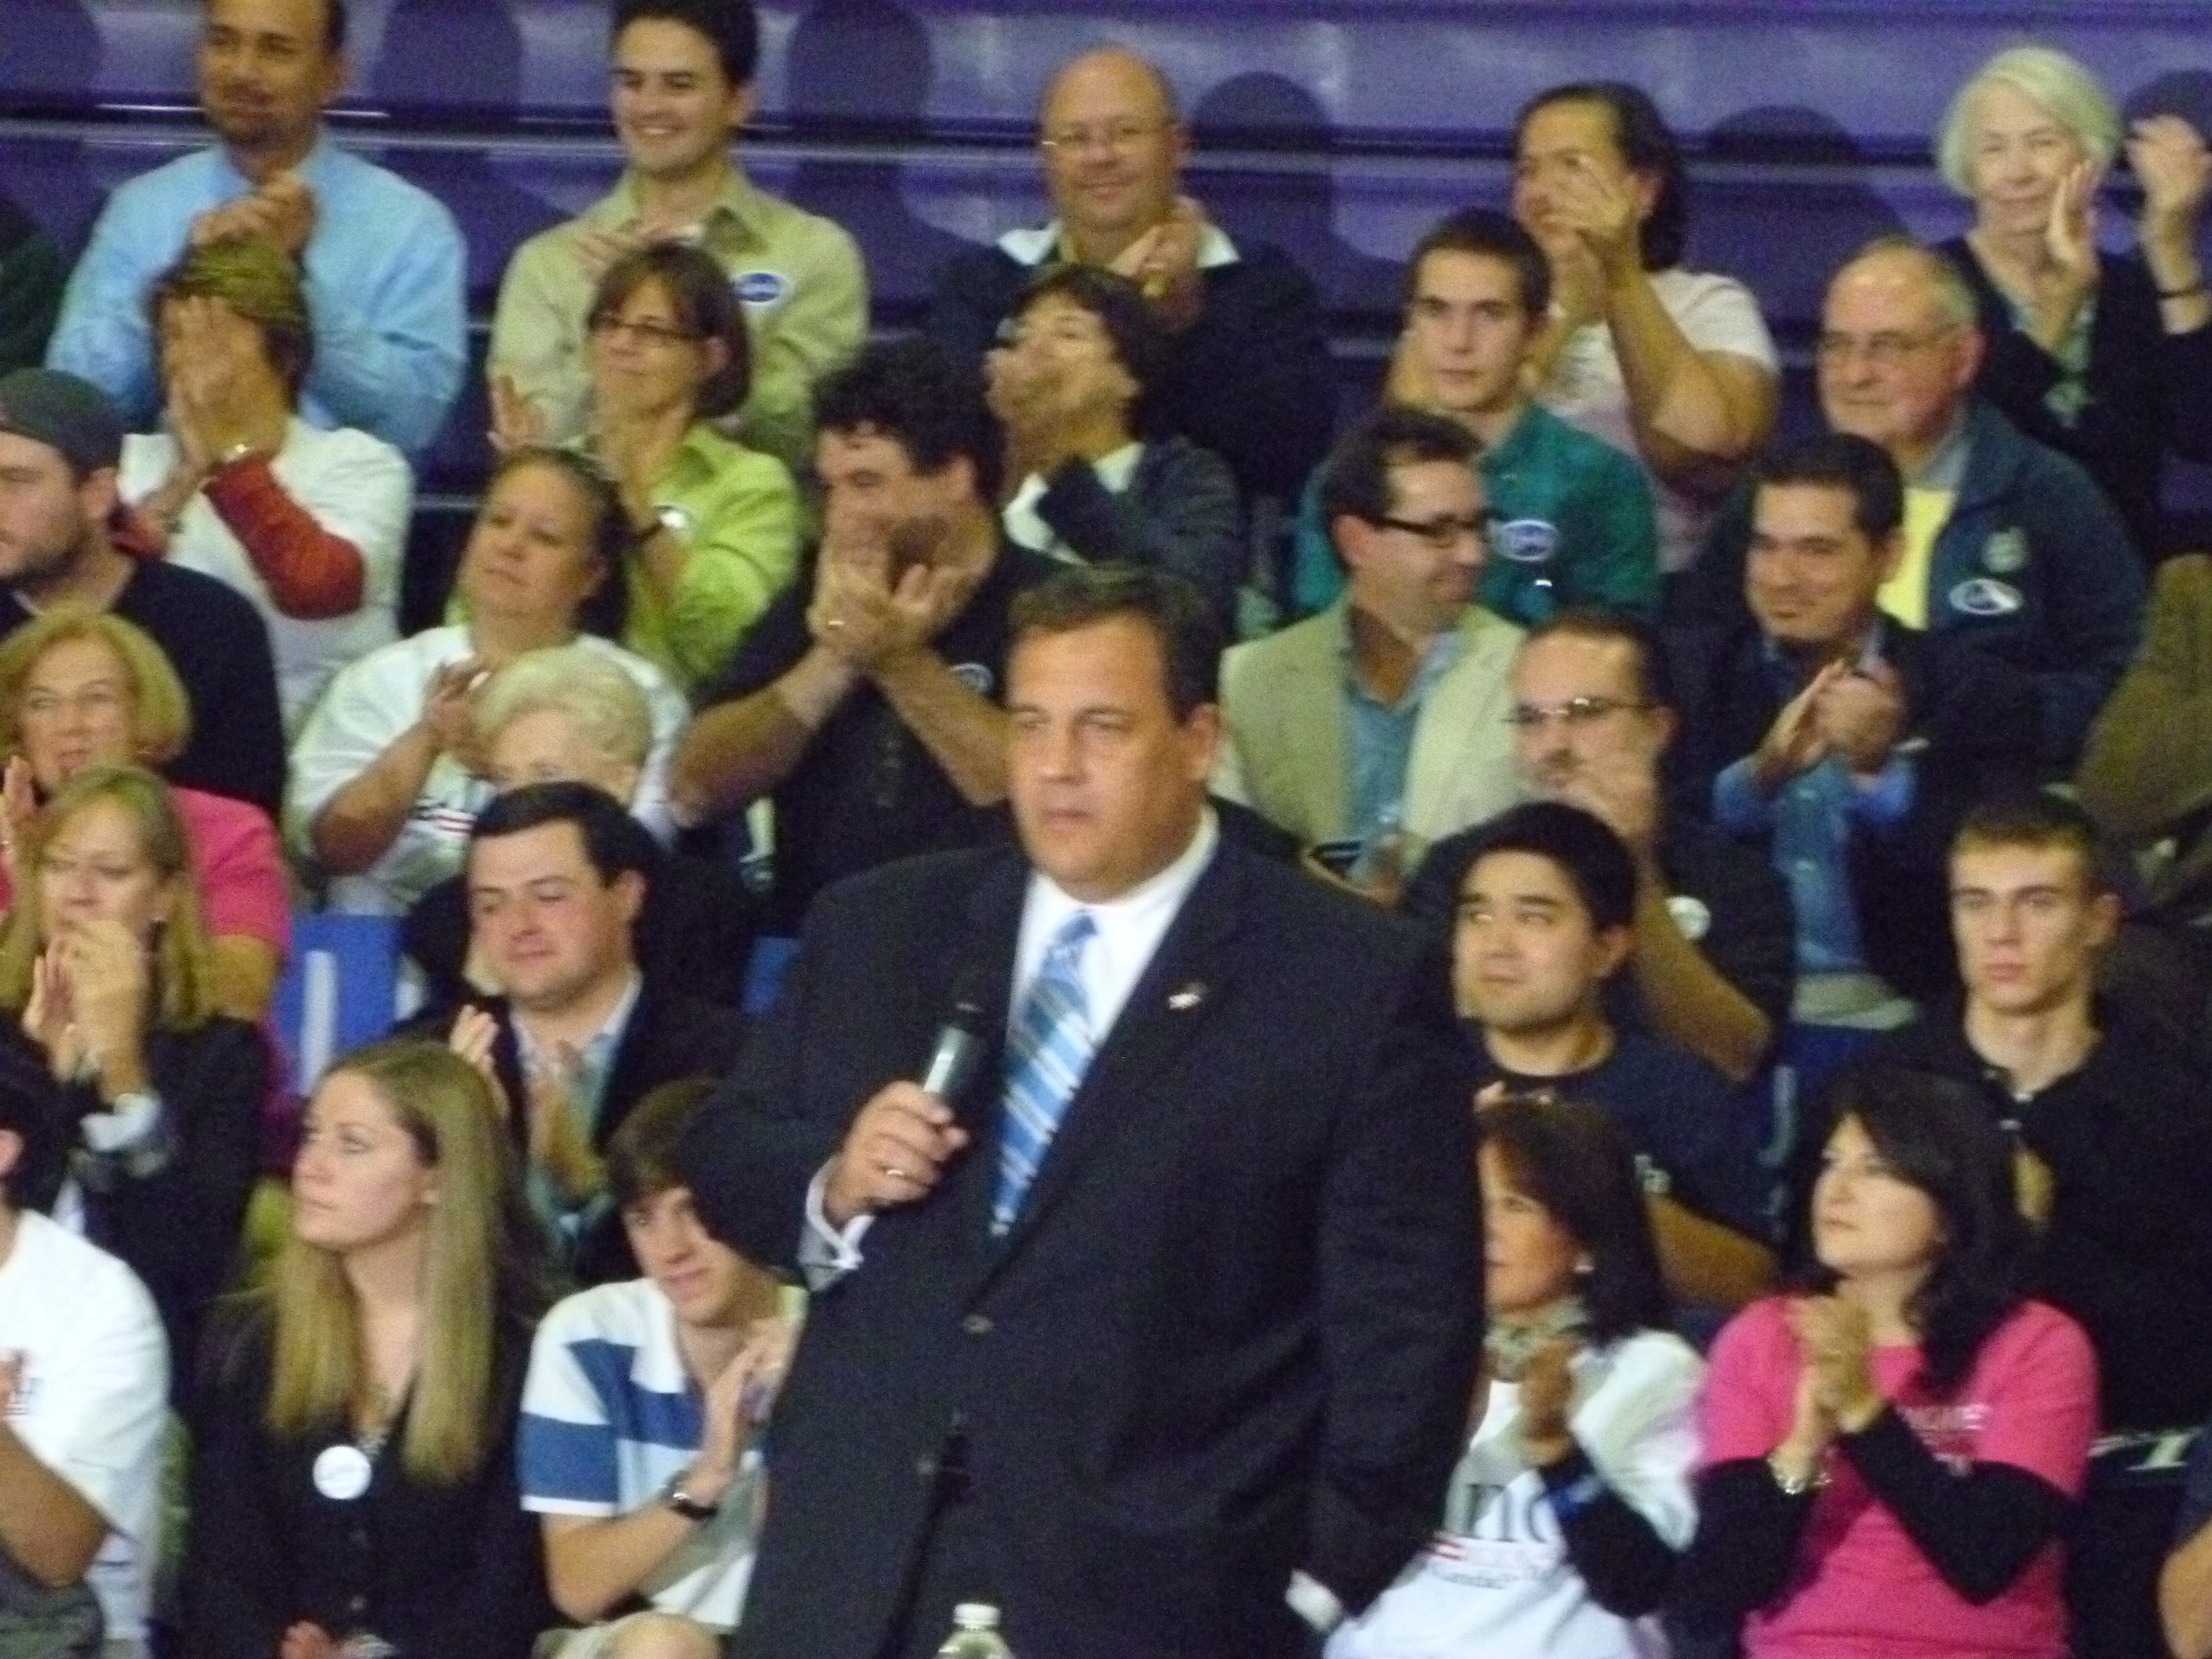 About 200 gun control activists turned out for Chris Christie's visit to Greenwich Monday for a Republican party fundraiser and promotion of Tom Foley's candidacy for governor.